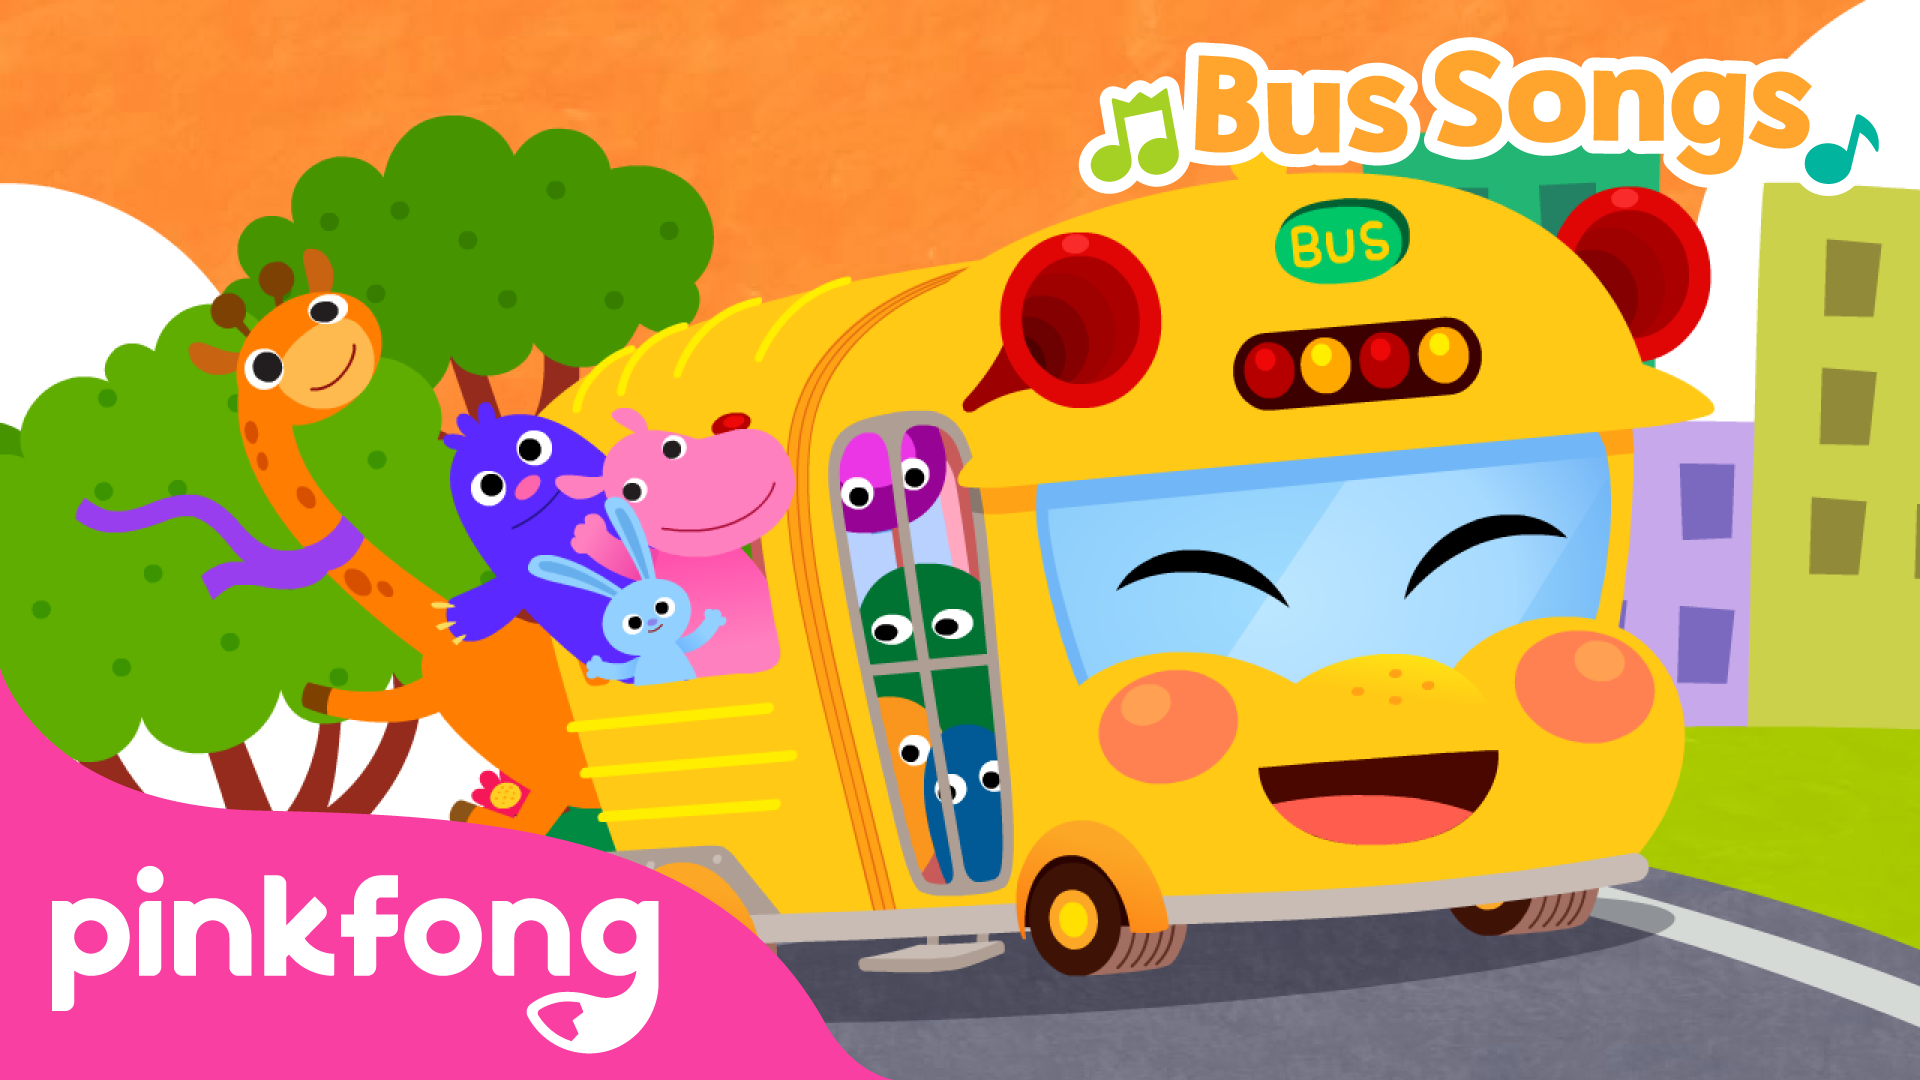 Pinkfong! Bus Songs